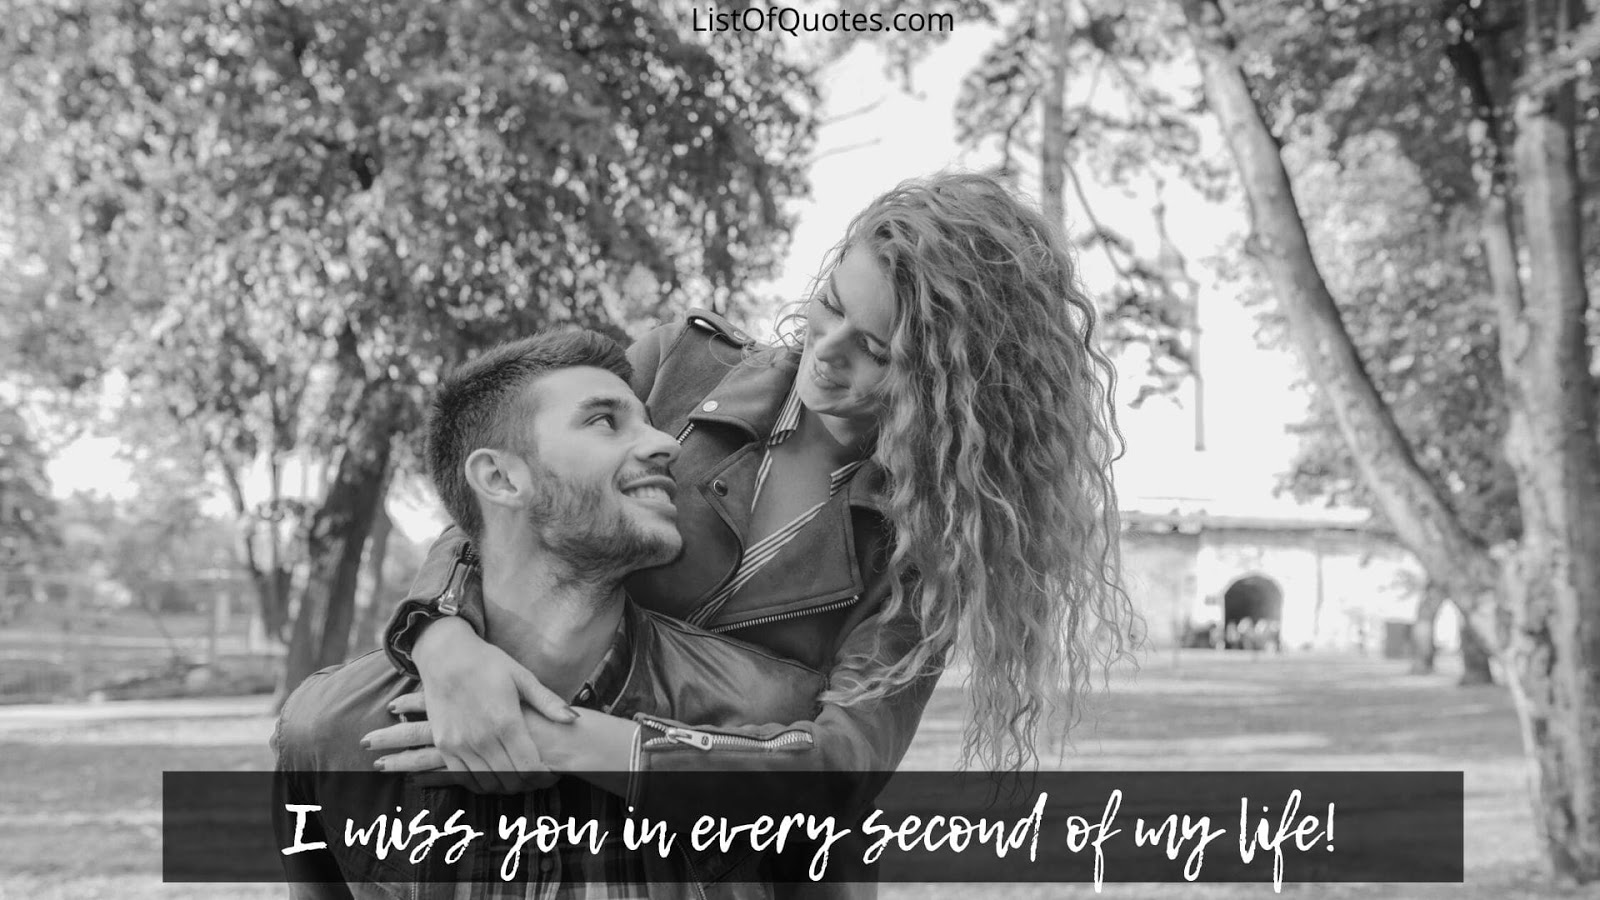 romantic words for a long distance relationship for girlfriend boyfriend